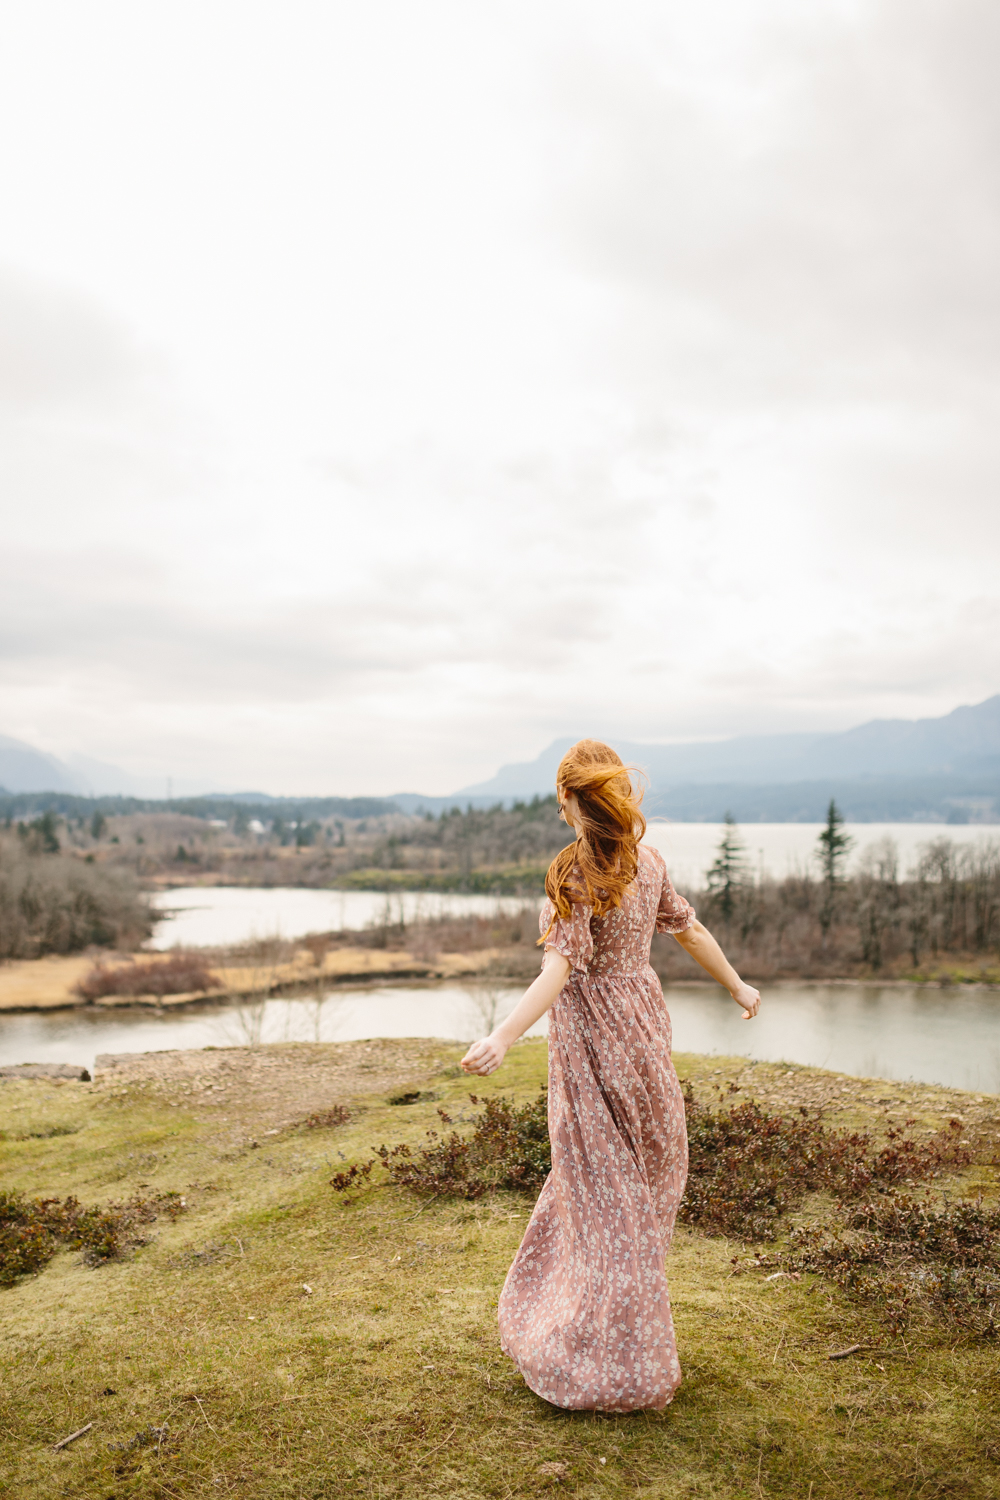 Columbia River Gorge - Portrait of a woman dancing in the wind